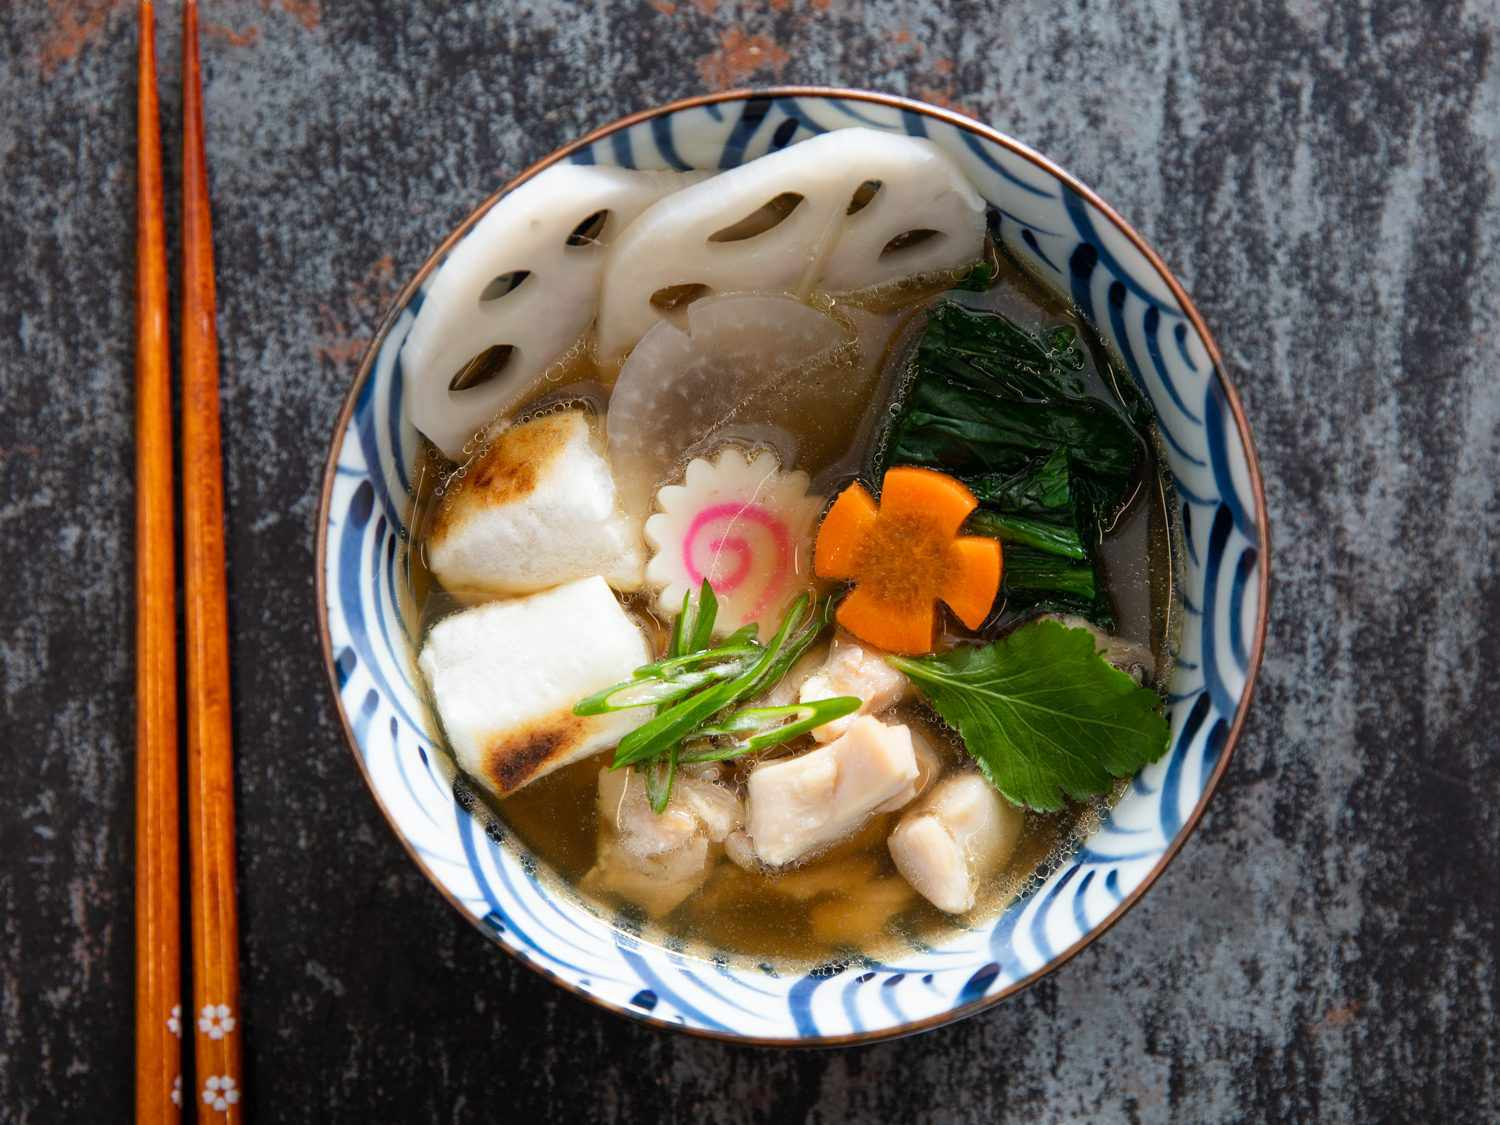 A bowl of ozoni (Japanese New Year's soup) filled with lots of goodies: tender carrots, lotus root, daikon radish, fish cake, chicken and more